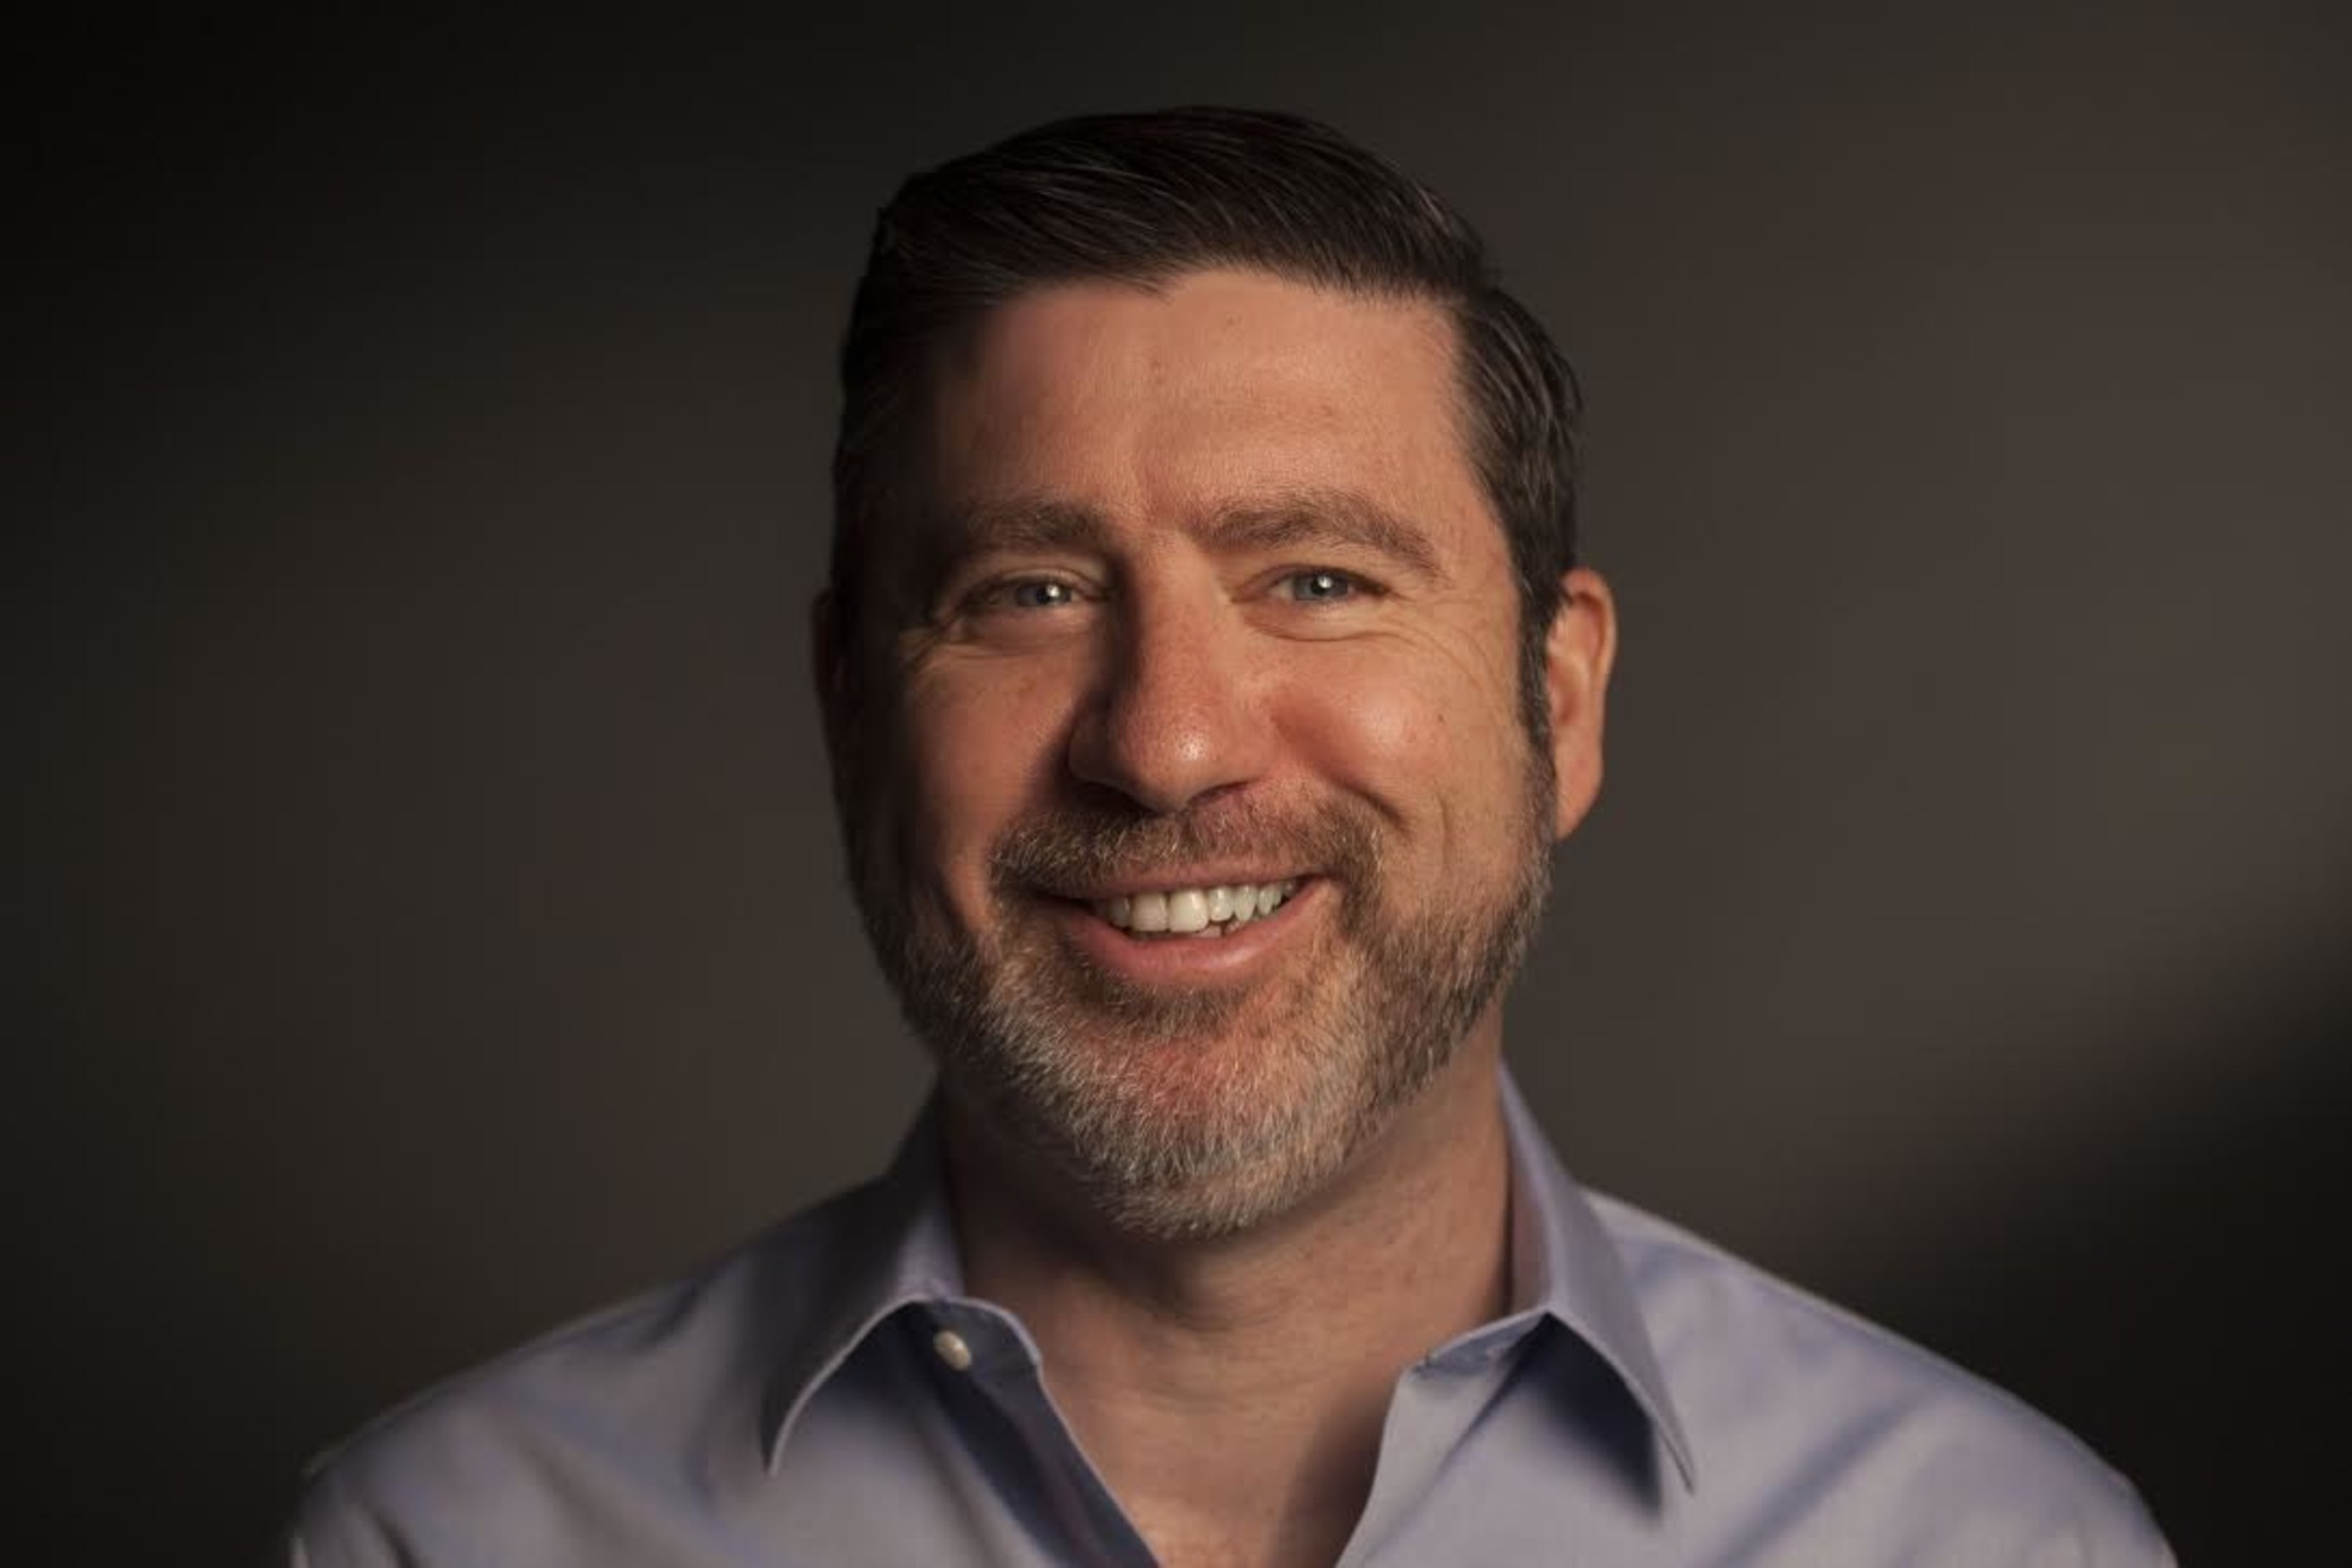 Byrne will lead the personalized content production practice at Frequency540.